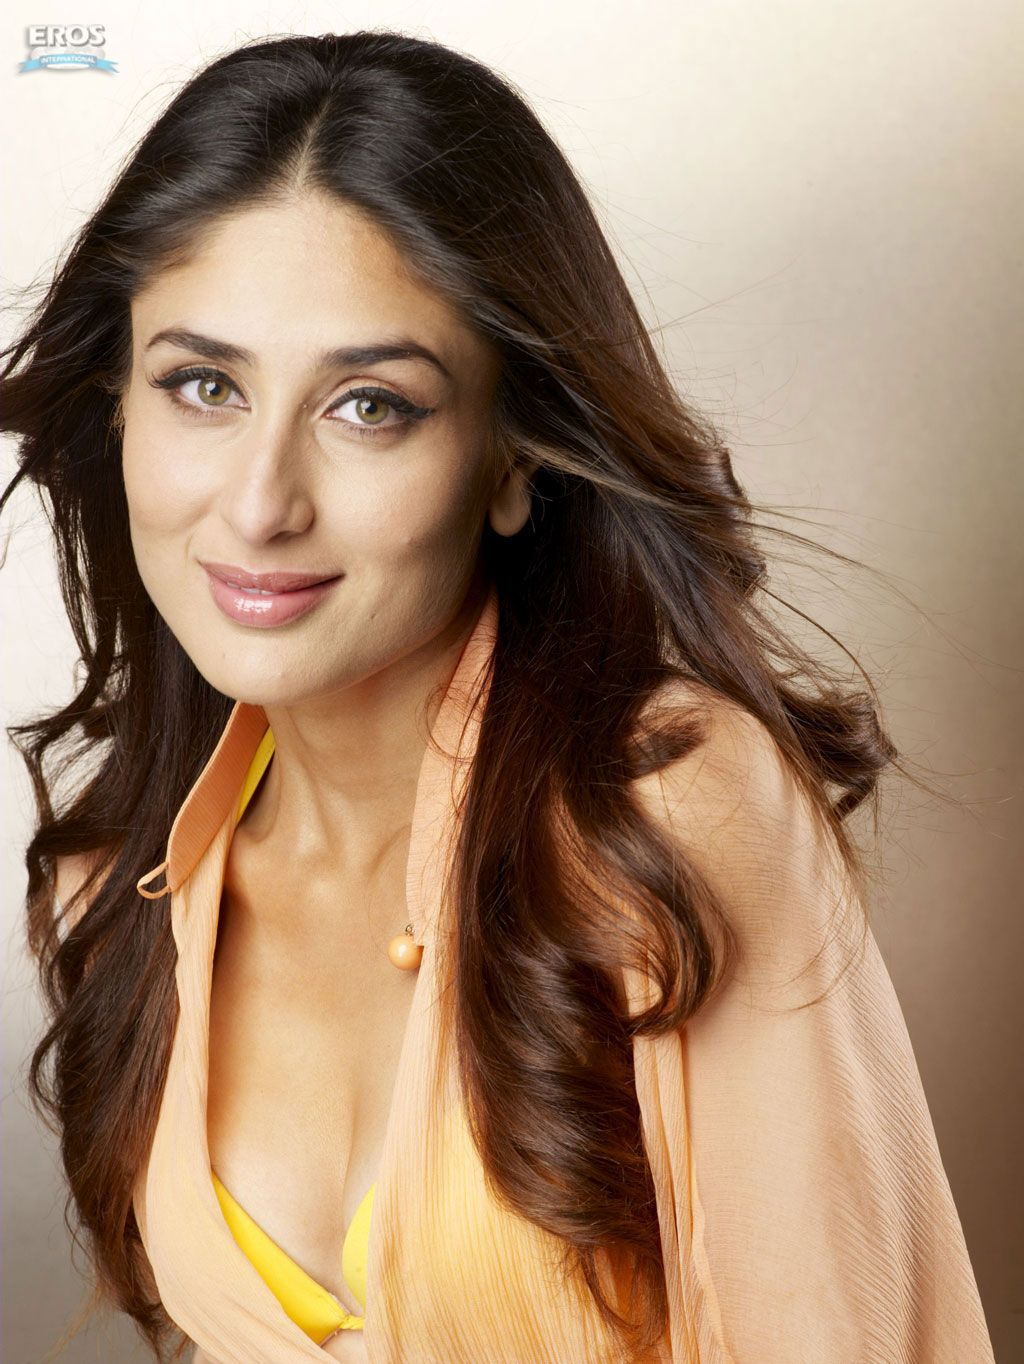 http://3.bp.blogspot.com/-FDONsA_CJP0/Tdg_68pvHrI/AAAAAAAAAHc/law4rFA81os/s1600/Kareena-Kapoor-Yellow-Bra-Dress+2.jpg